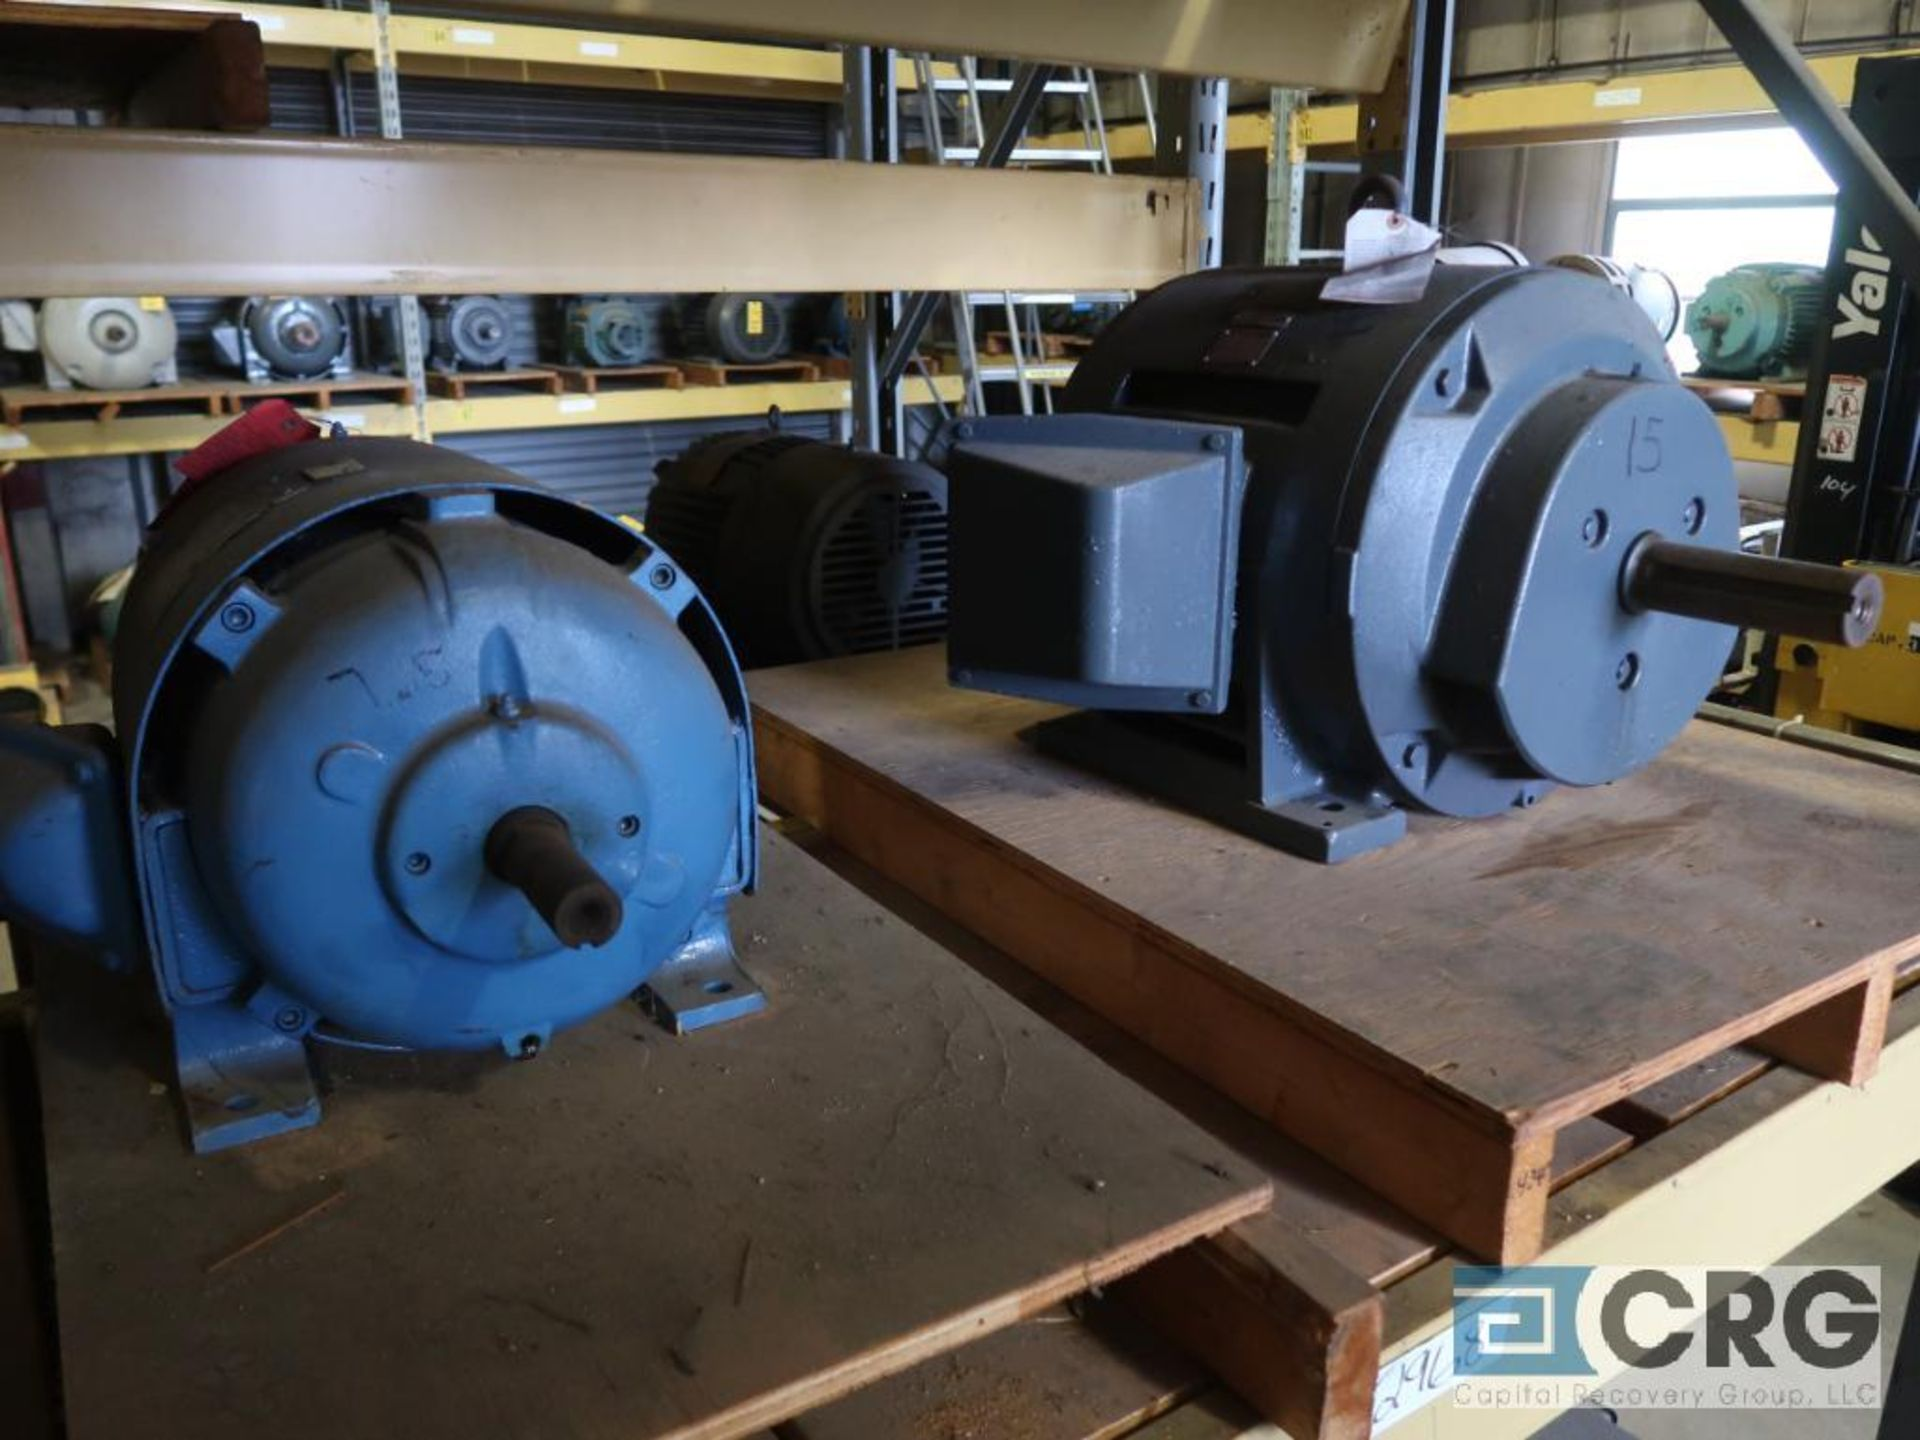 Lot of (29) assorted 15 HP, 10 HP, and 7.5 HP motors on (7) shelves, some with gear drives (Motor - Image 2 of 11